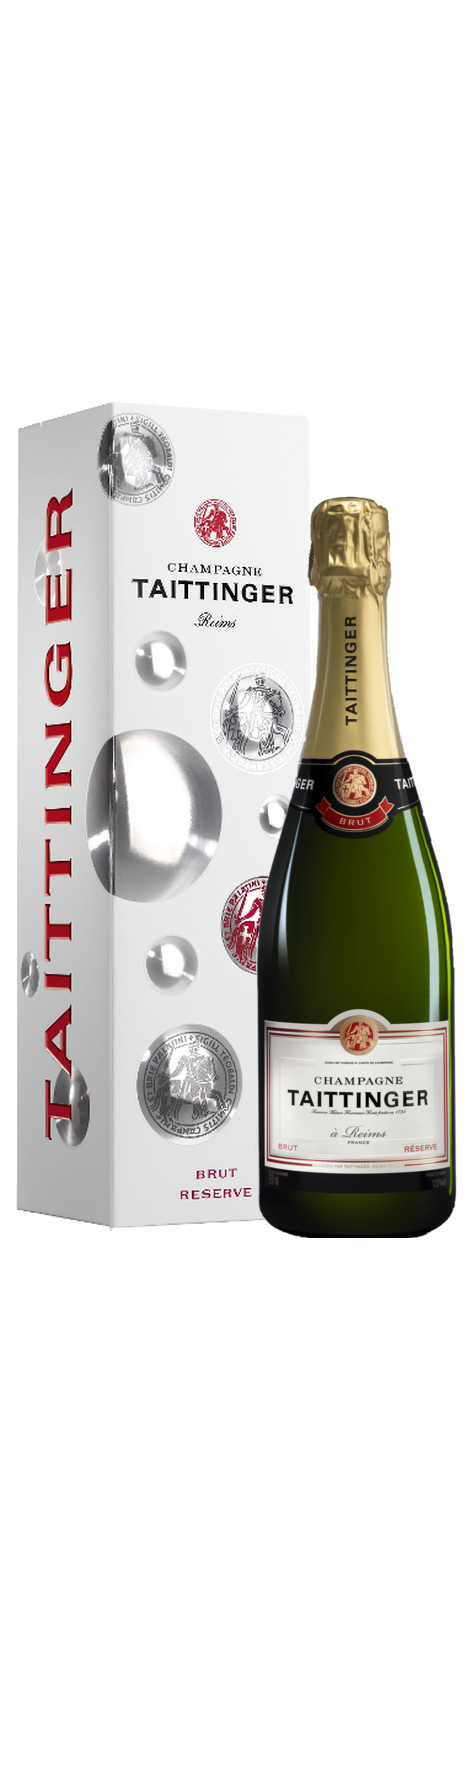 Champagne Taittinger Brut Réserve in luxe verpakking